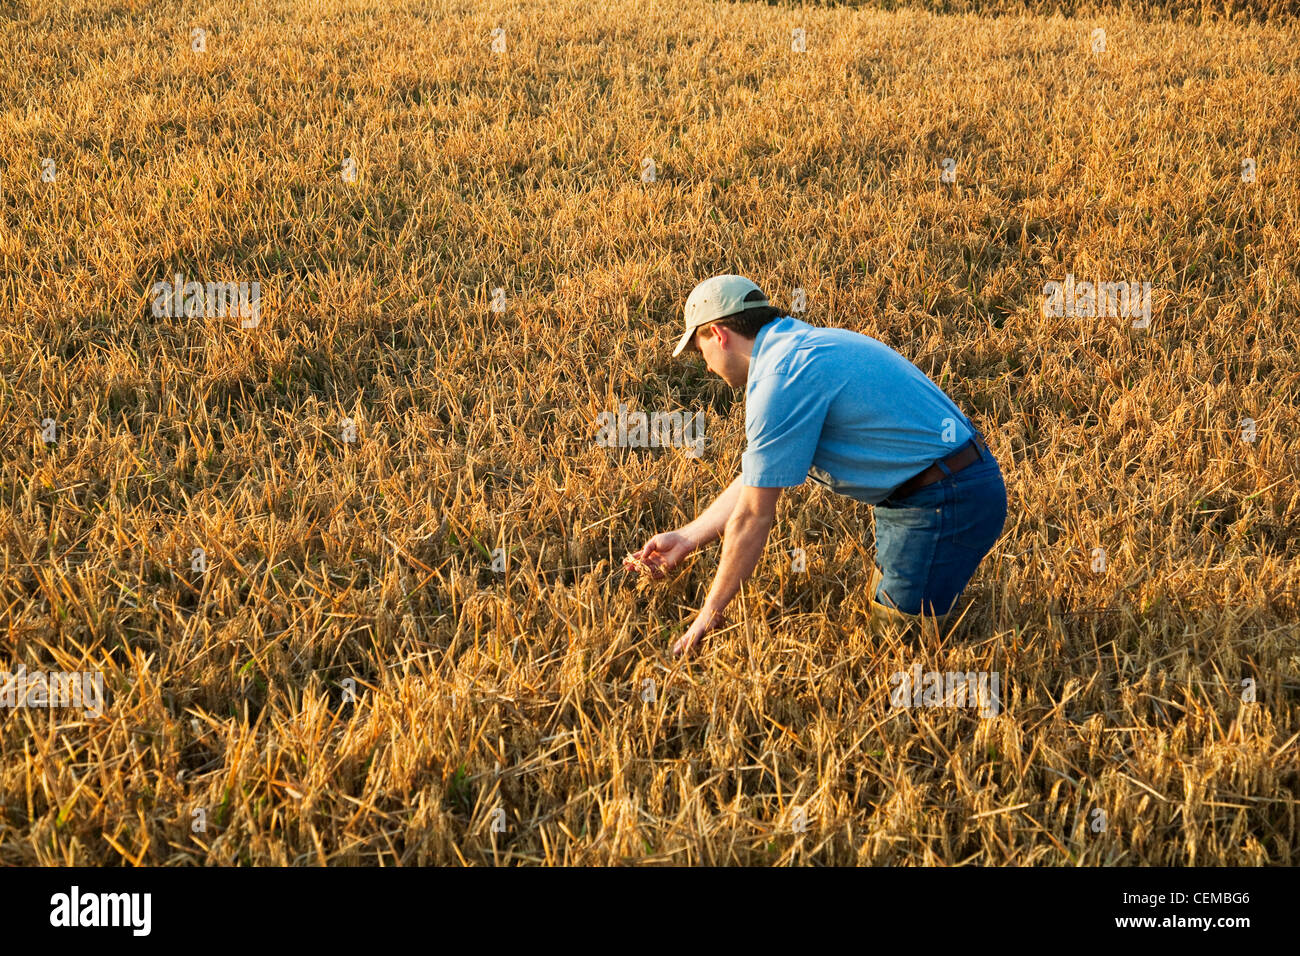 A farmer (grower) in his field inspects his nearly mature rice crop in order to determine when the harvest will - Stock Image